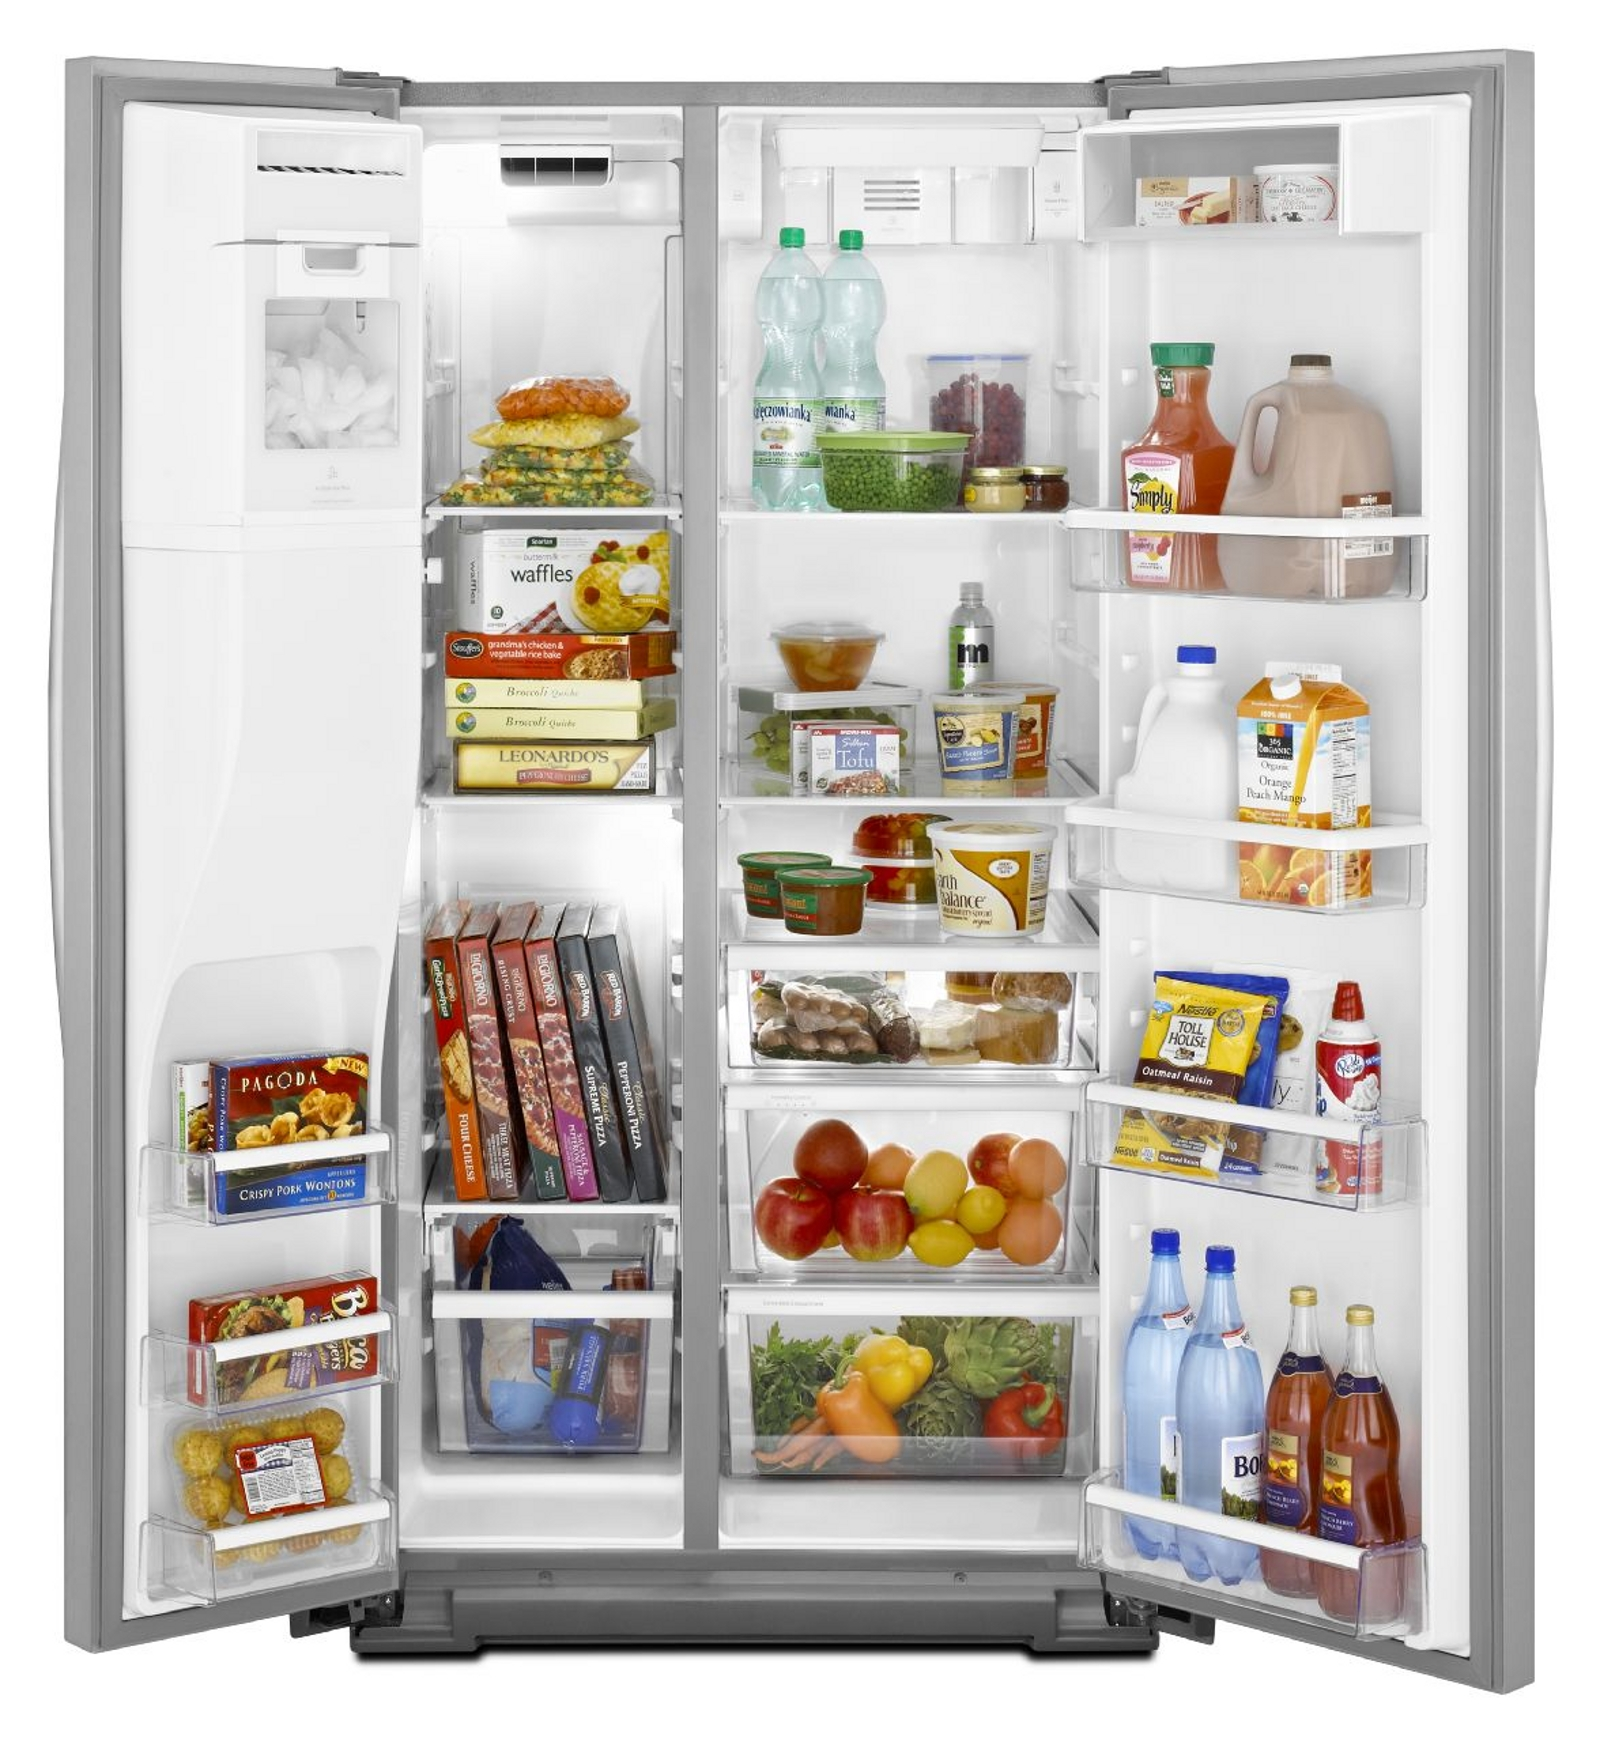 Whirlpool 26.3 cu. ft. Side-by-Side Refrigerator